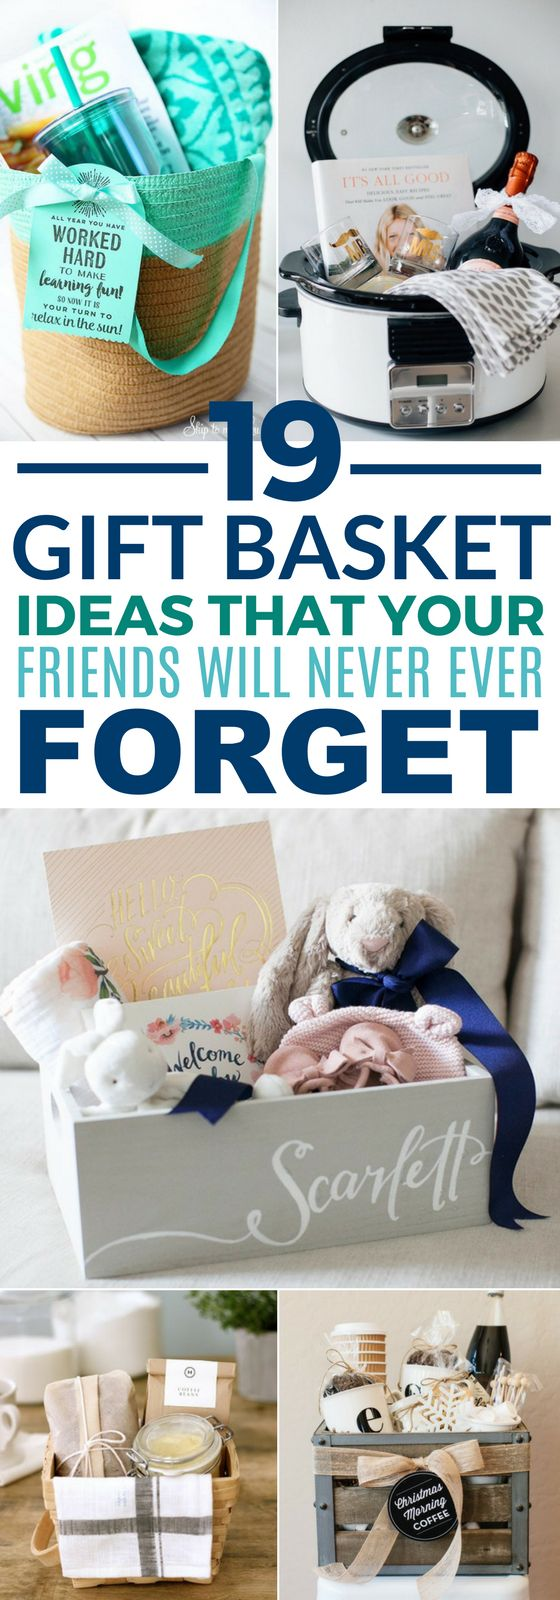 These 19 Gift Baskets Ideas Are Sure To Win Over All Of Your Friends! Whether for their birthday, Christmas, New Years, Valentine's Day, etc. there is something here for everyone. #giftbaskets #diy #crafts #holidays #birthdays